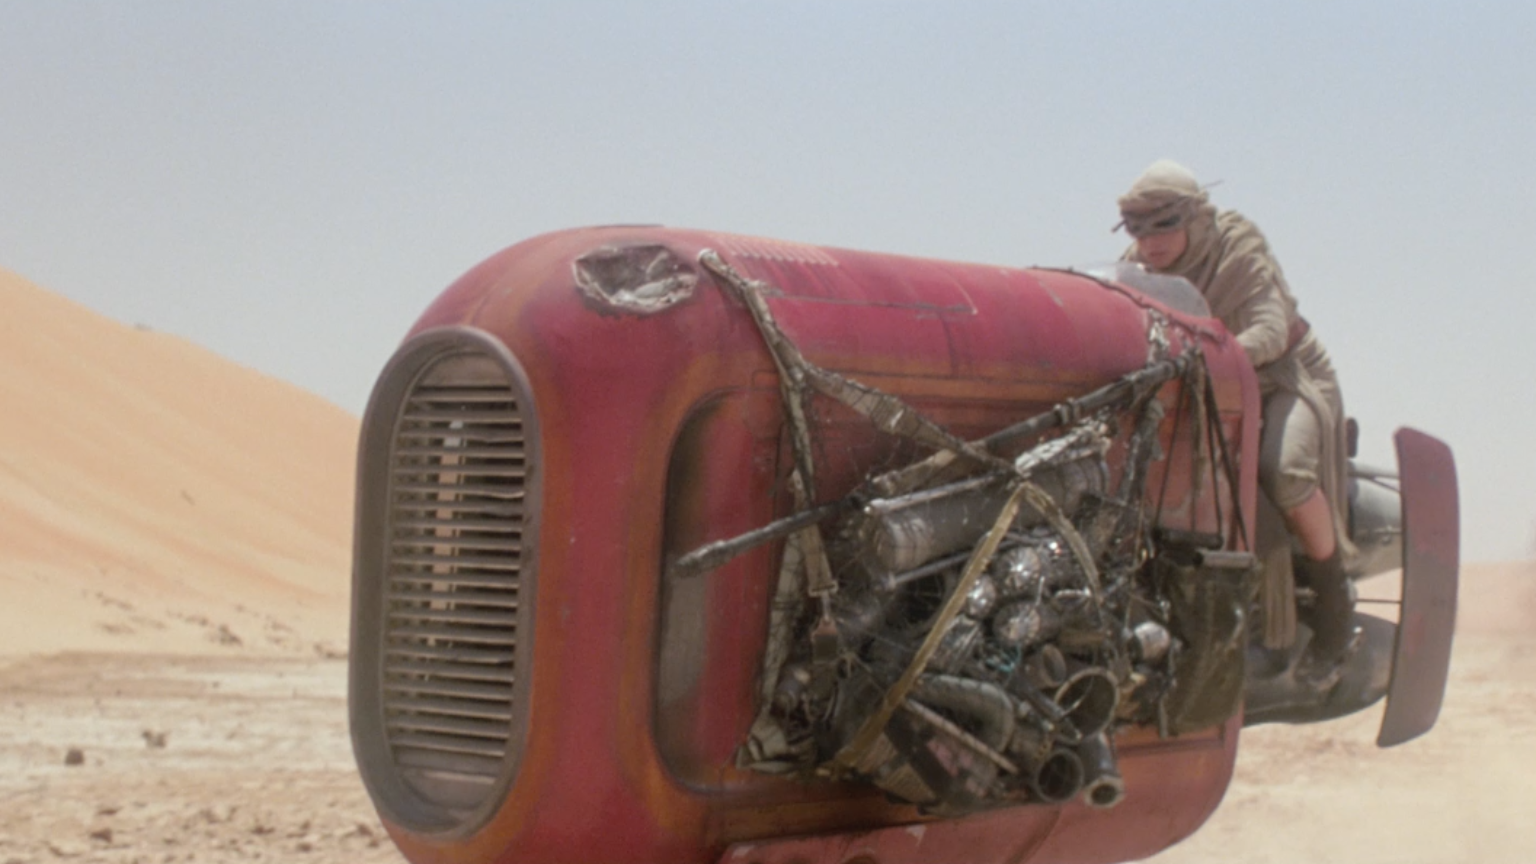 The Force Awakens - Rey on speeder